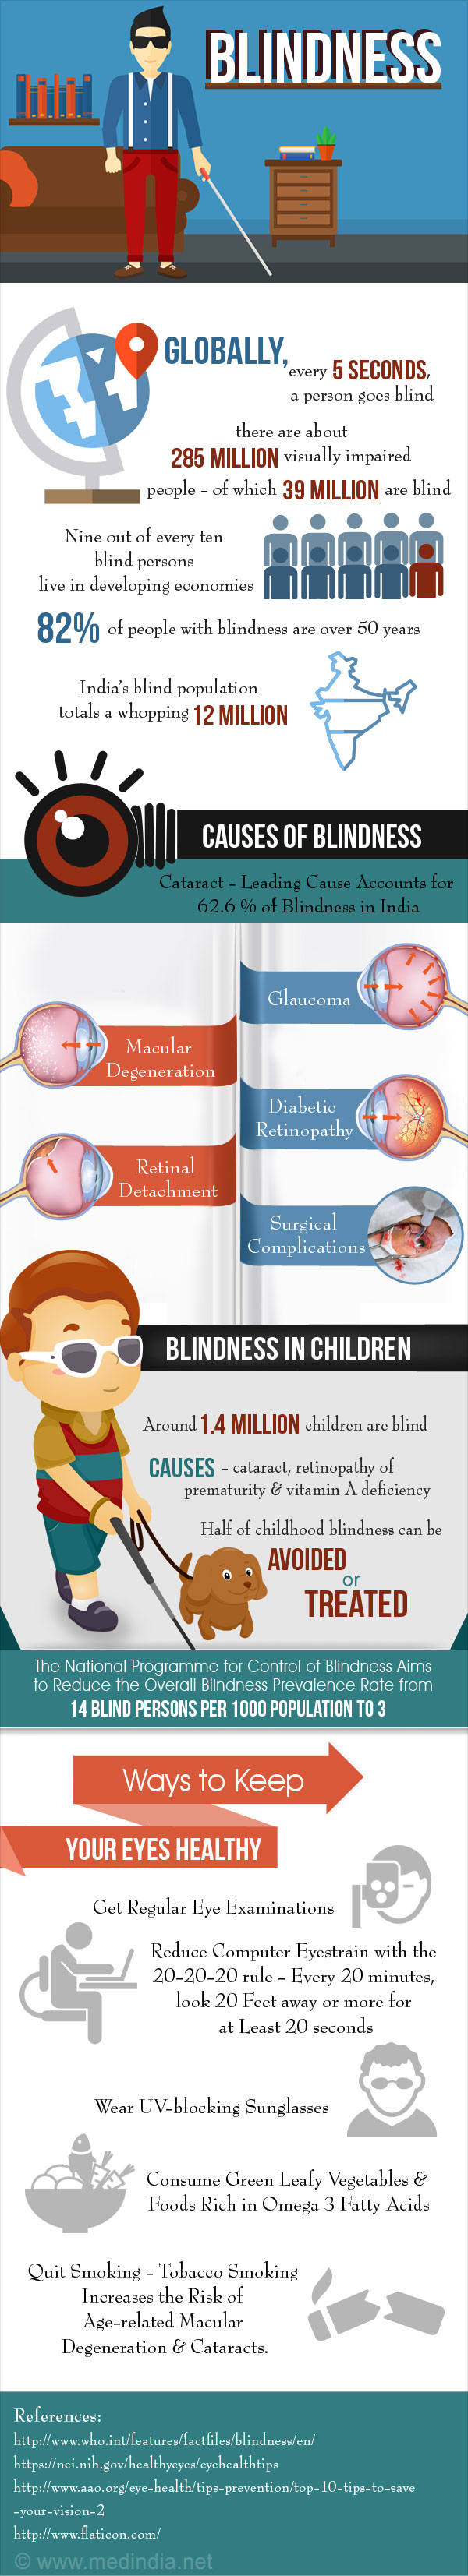 Blindness - Infographic